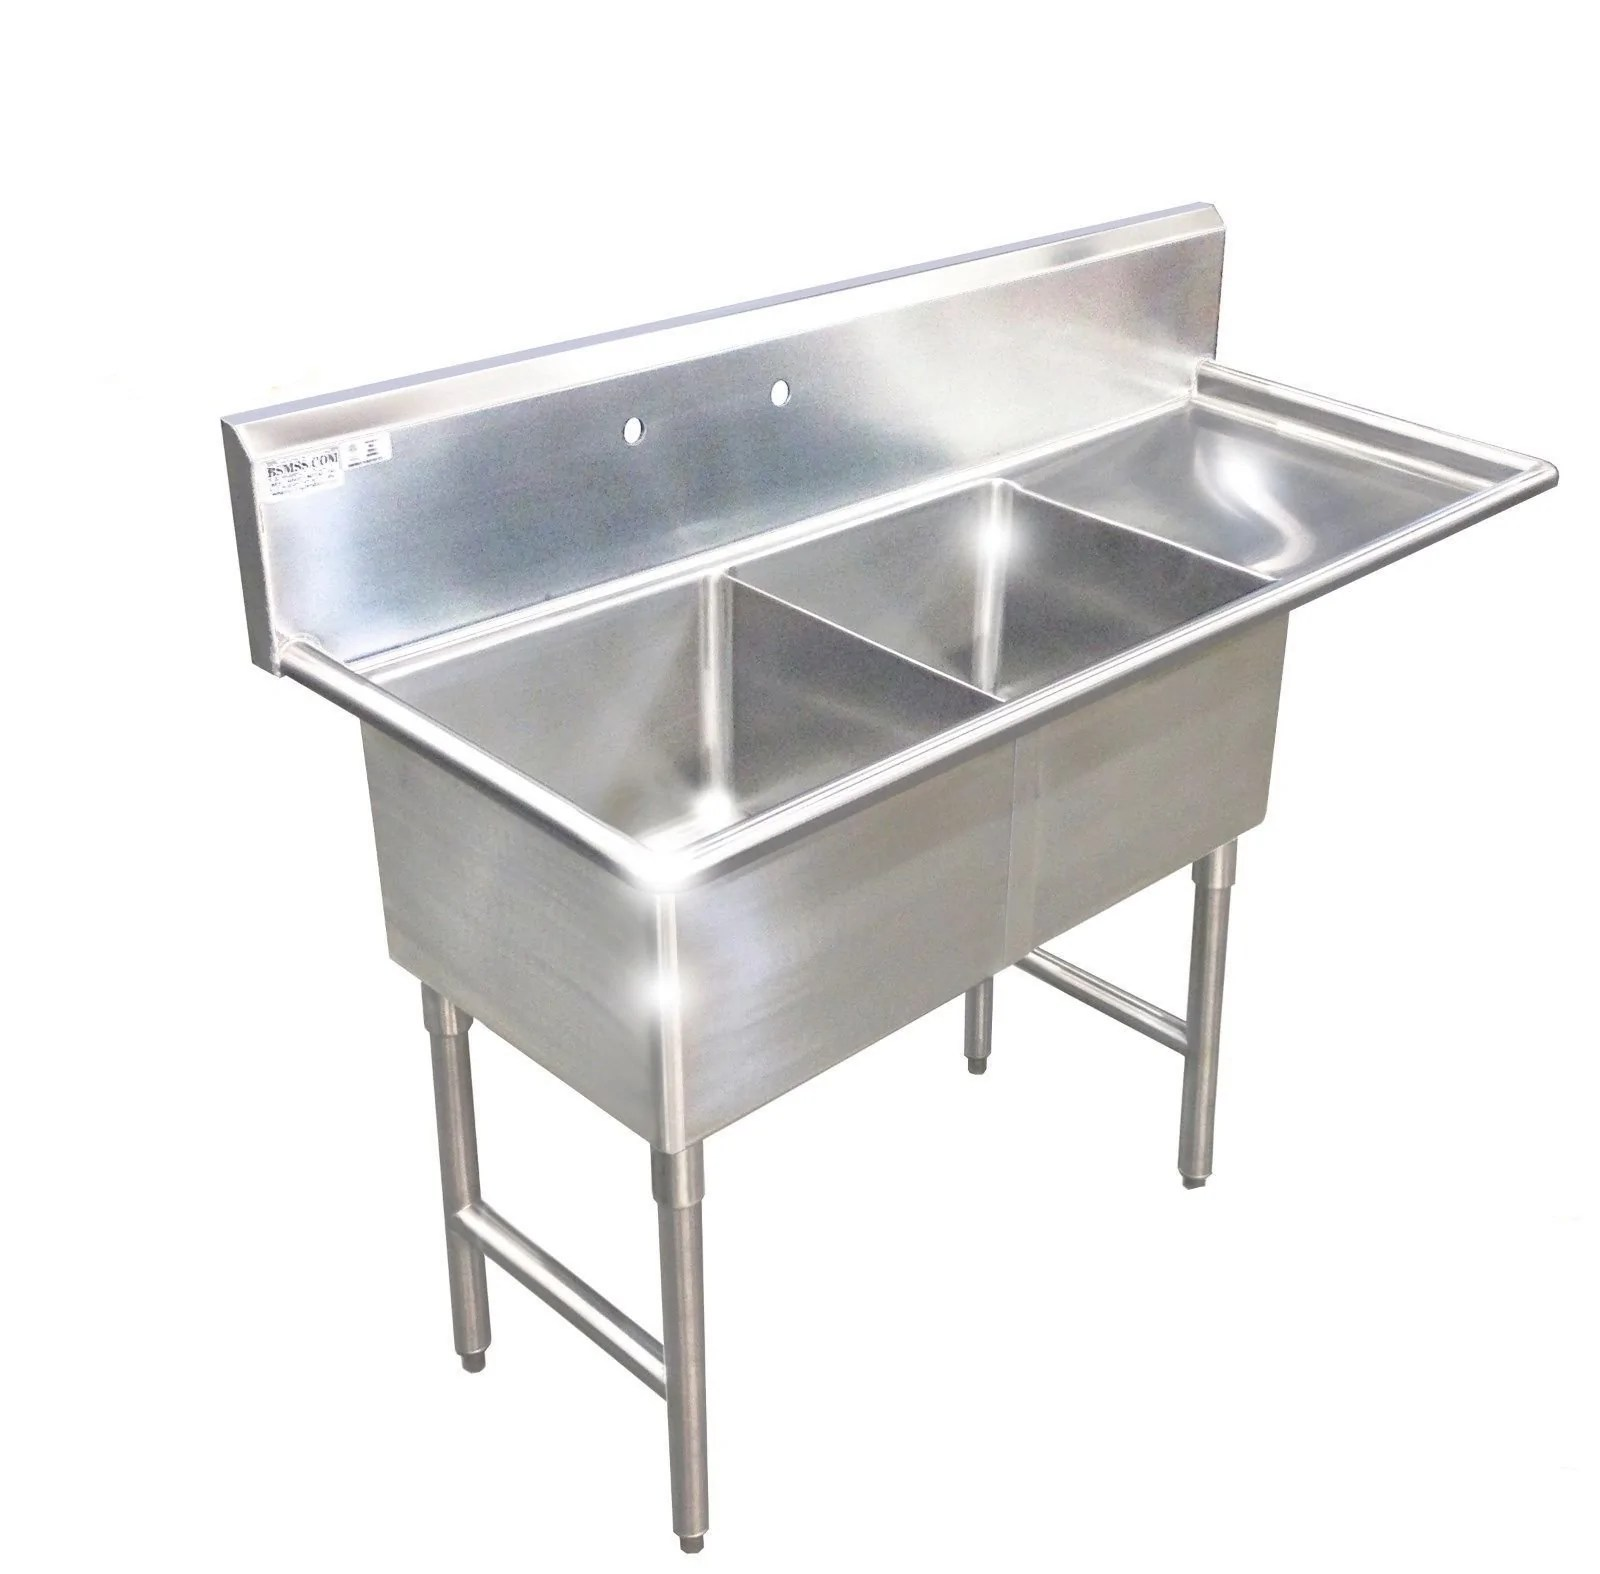 heavy duty stainless steel 14 gauge 0 0781 type 304 2 compartment restaurant commercial sink 56 1 2 with drain board s5624 181812